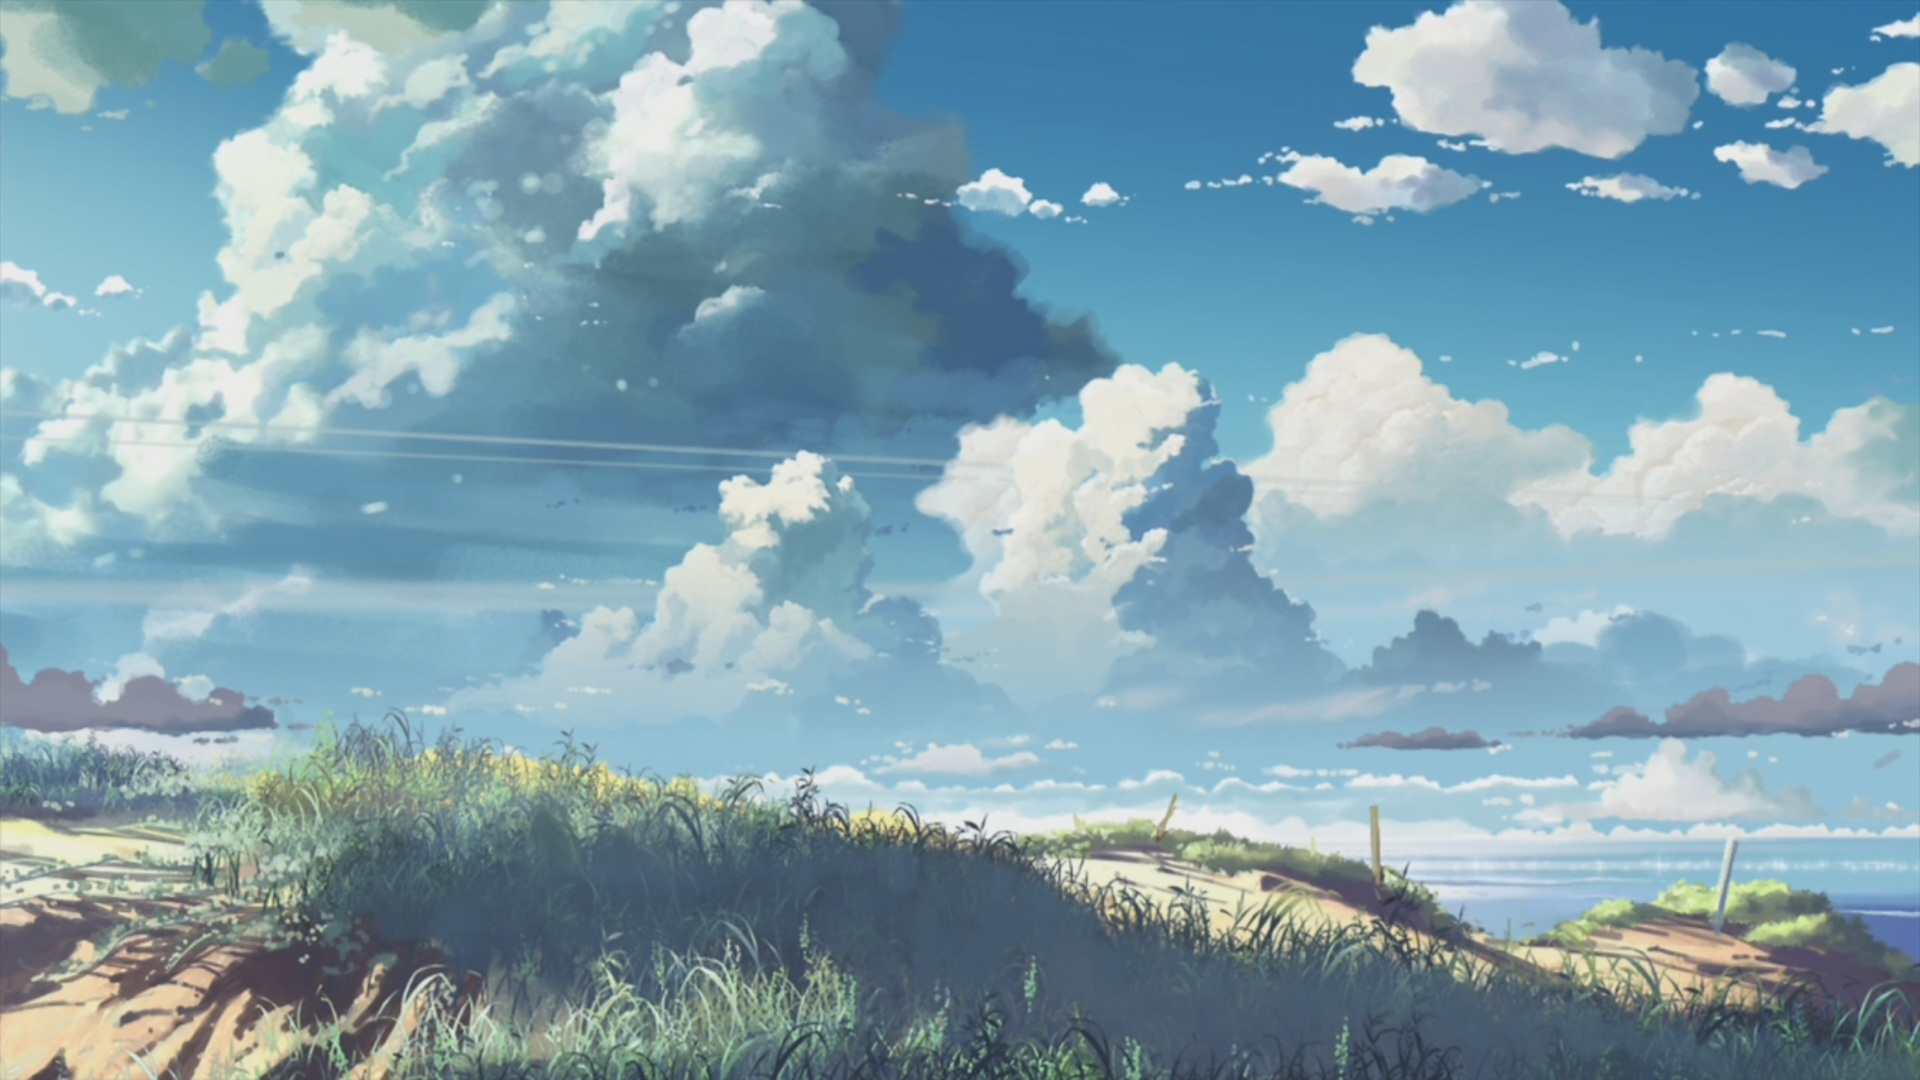 Anime Scenery Res: 1920x1080 HD / Size:353kb. Views: 117607